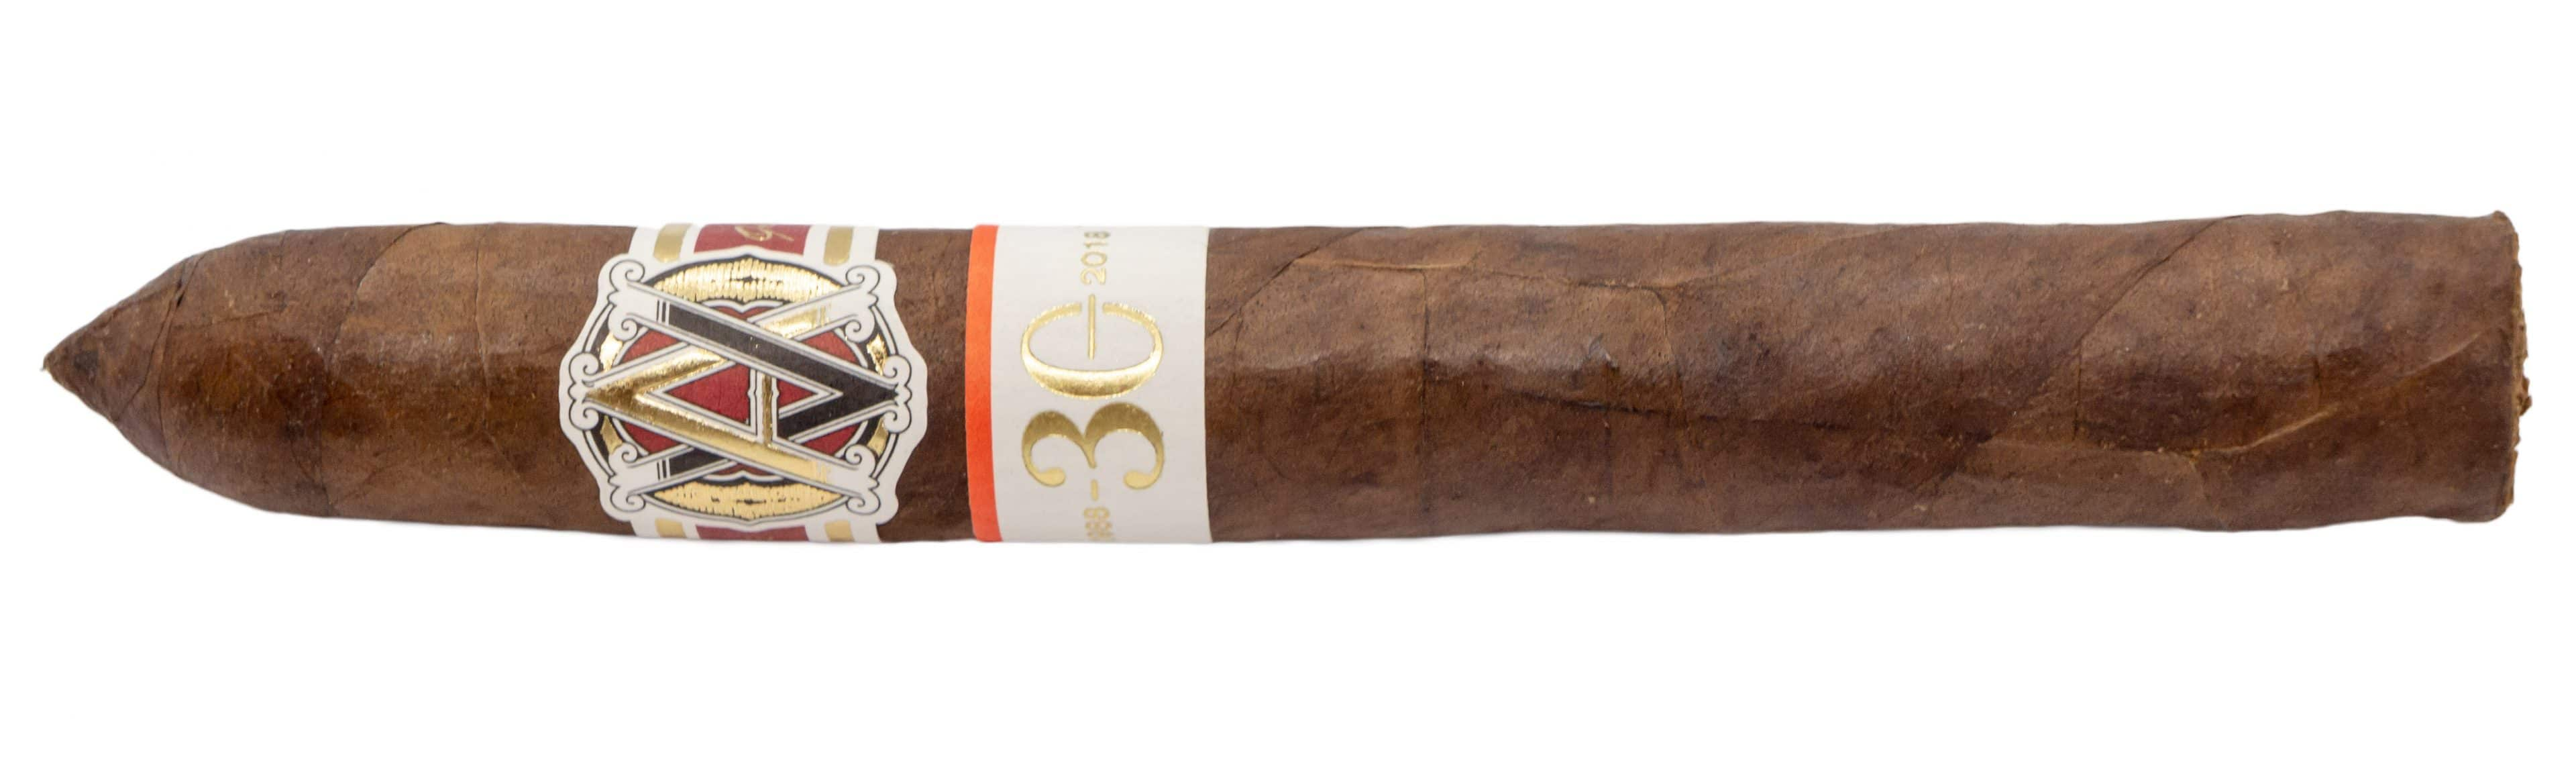 Blind Cigar Review: AVO | Signature Belicoso 30 Years